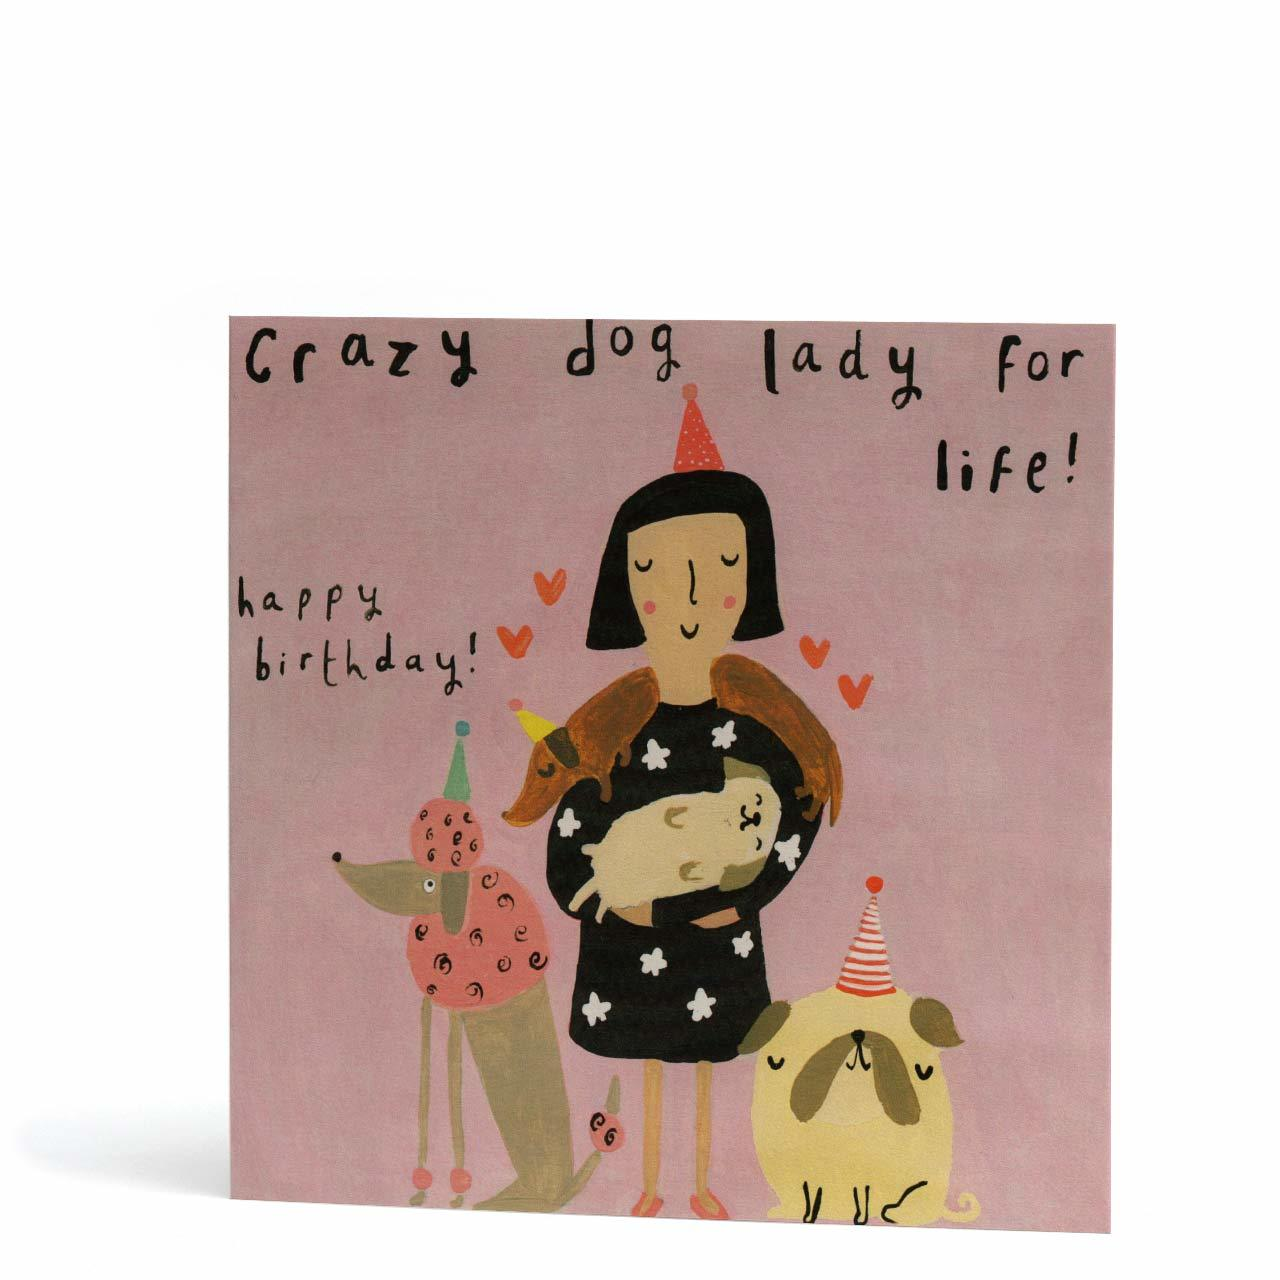 Crazy Dog Lady for Life Greeting Card